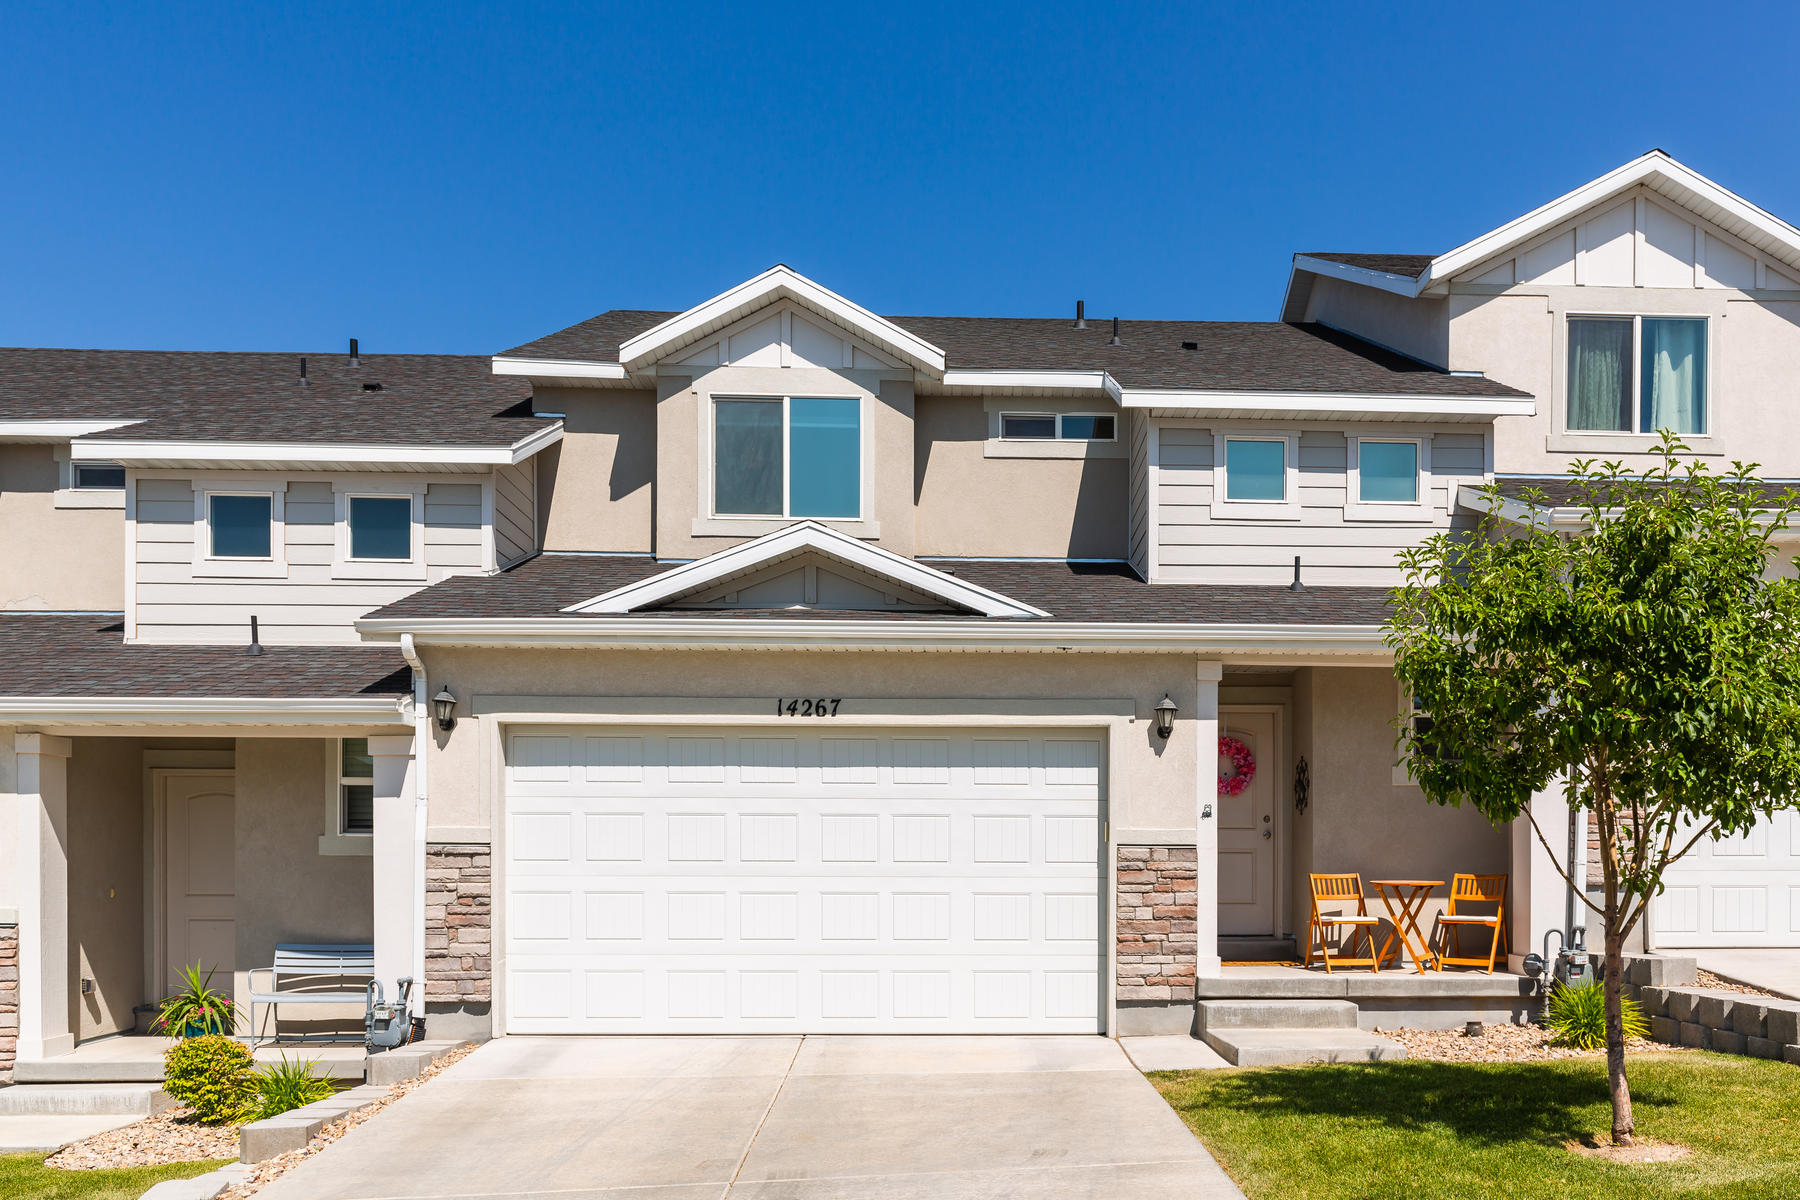 townhouses vì Bán tại Not Your Typical Townhome 14267 Meadow Rose Dr, Herriman, Utah 84096 Hoa Kỳ